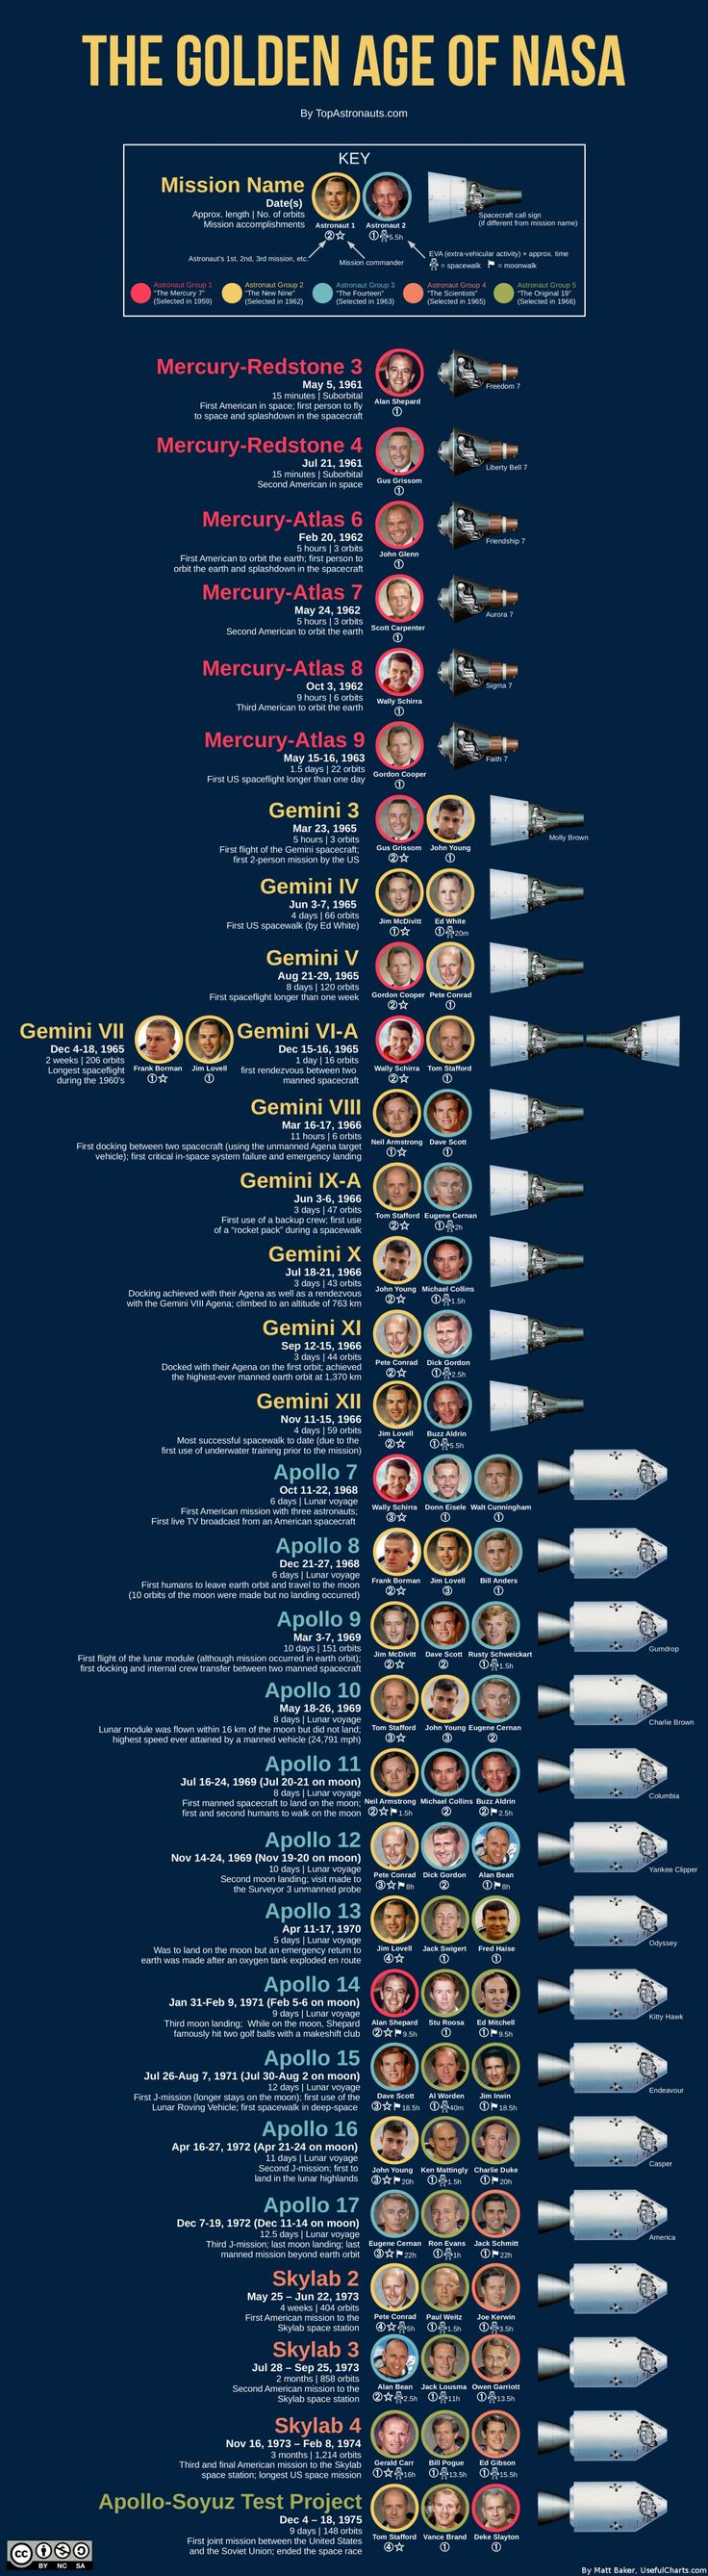 The Golden Age of NASA Infographic | shared by mattb434 | Dec 04, 2014 | in Science | Every US space mission from Mercury to Apollo-Soyuz with astronauts color-coded by selection group.